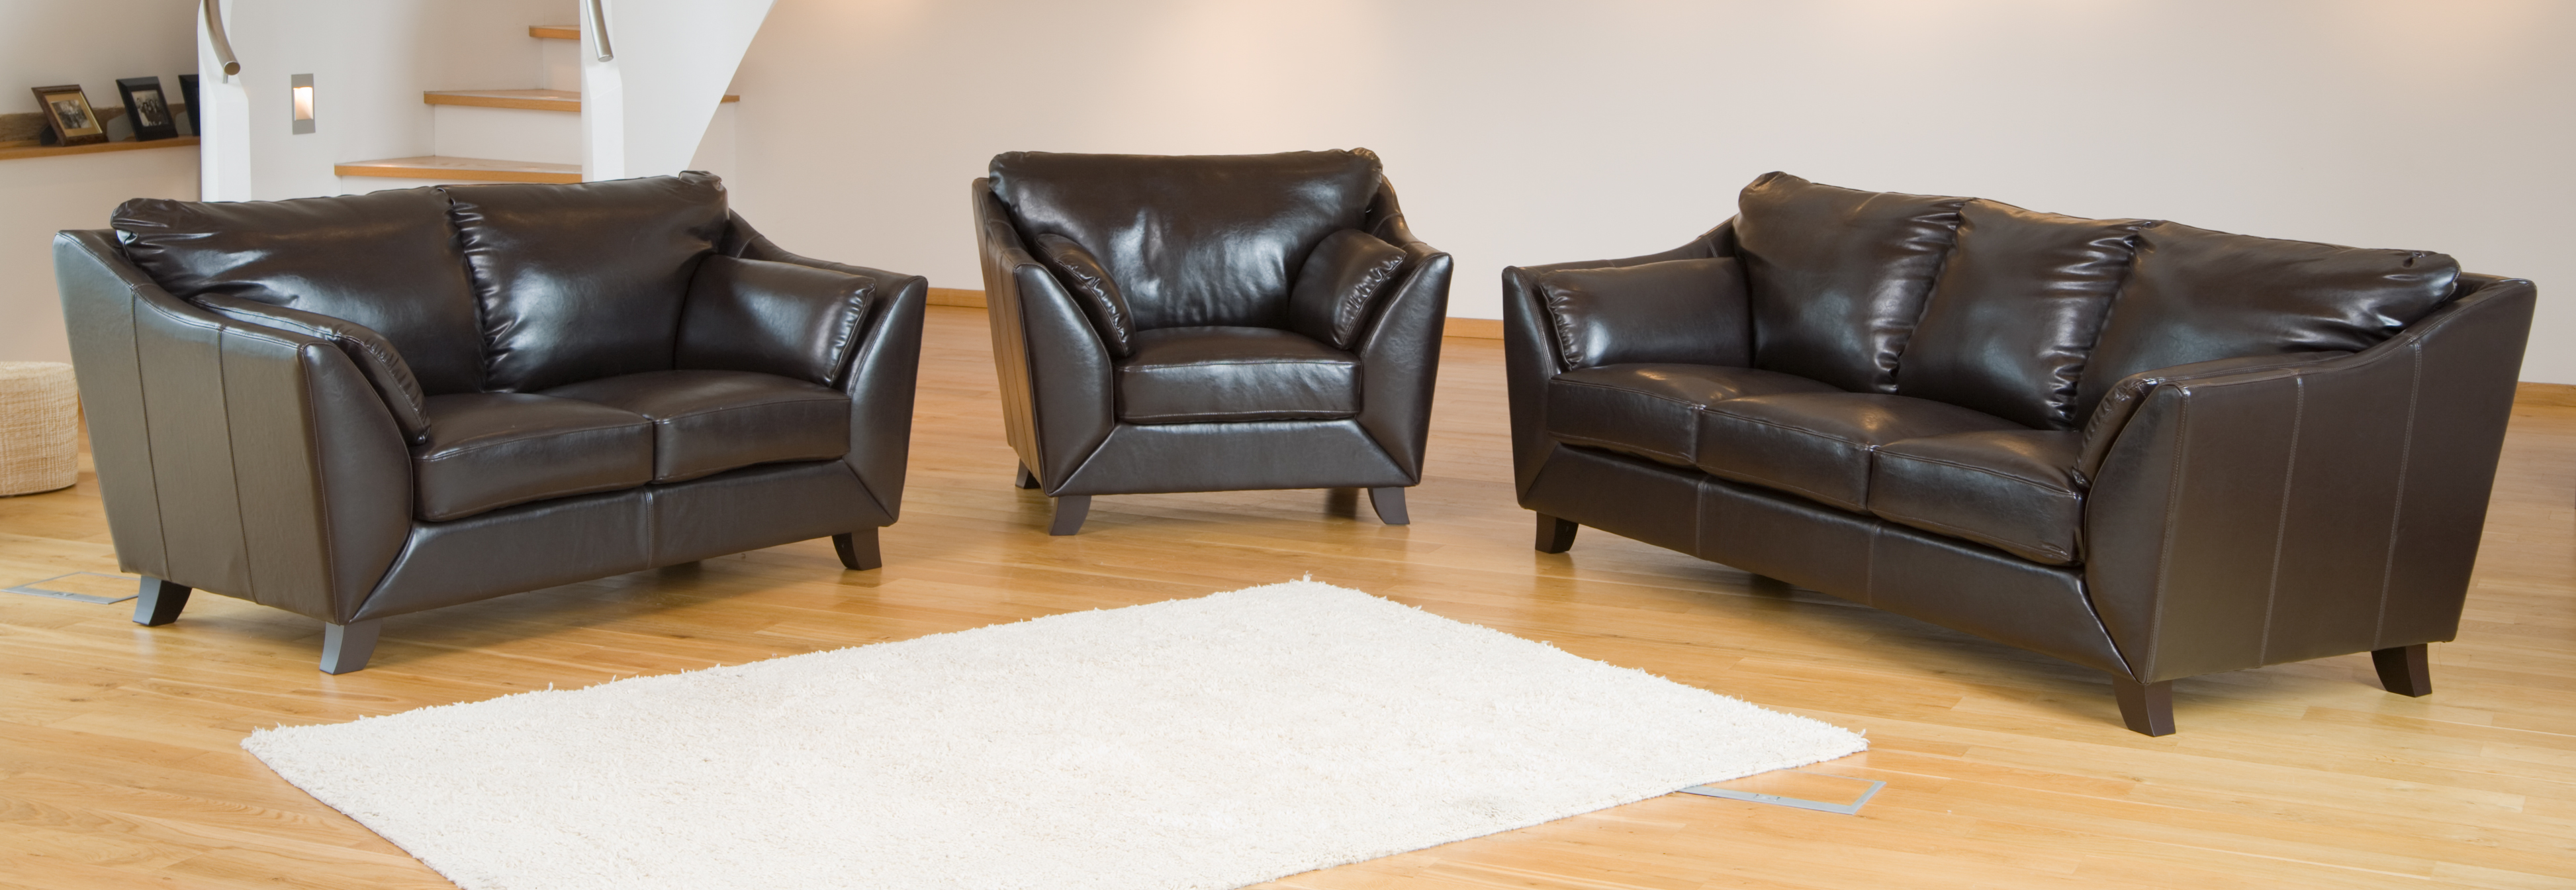 Verona Suite brown